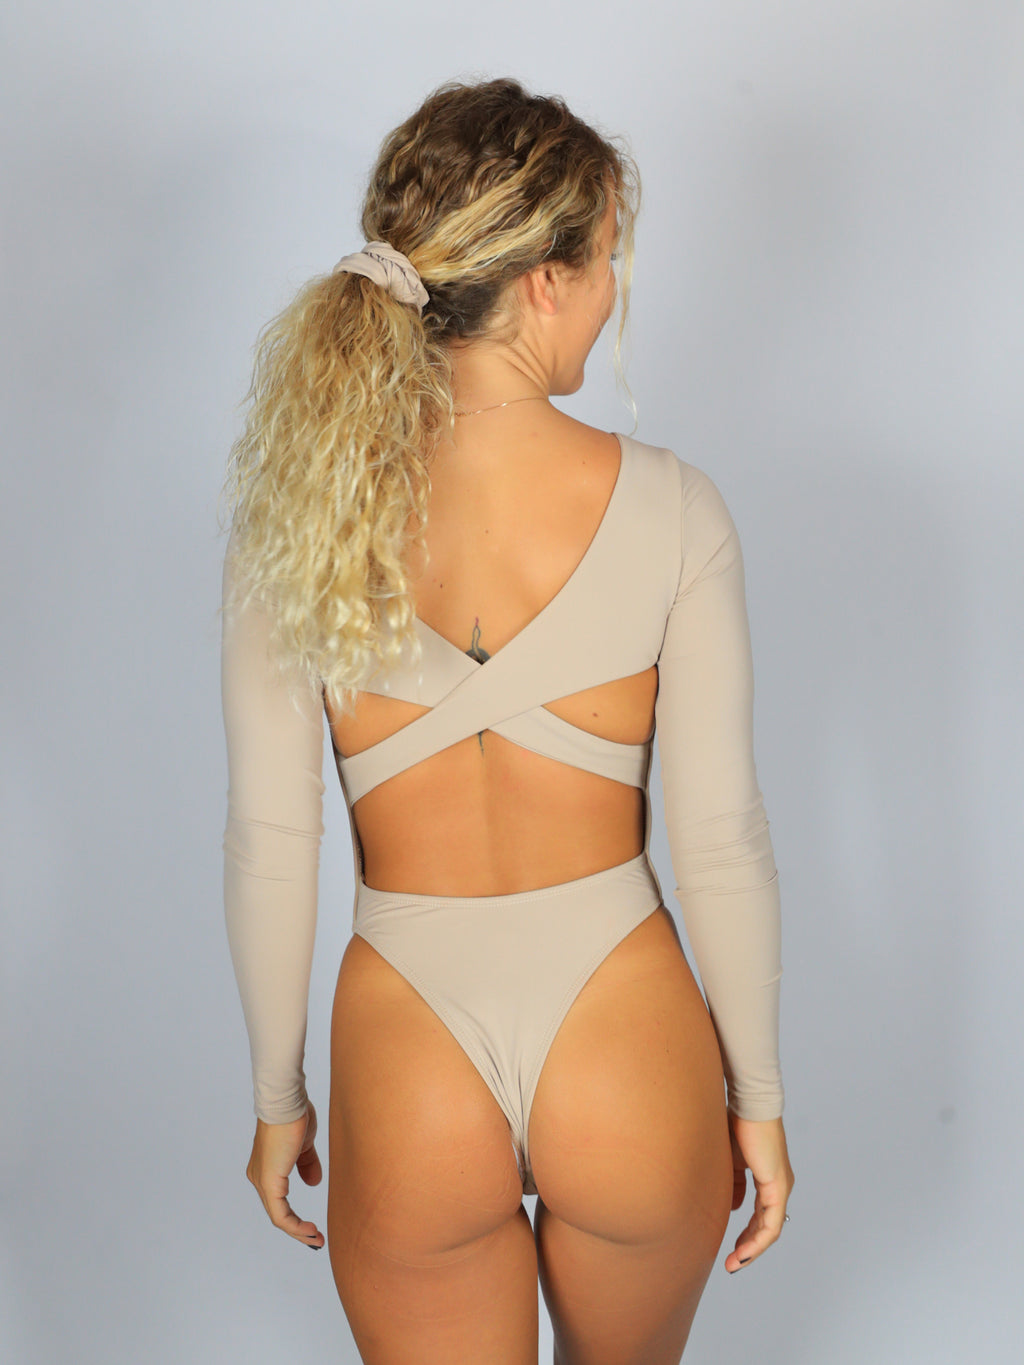 Daisy Duke One-Piece / Mocha